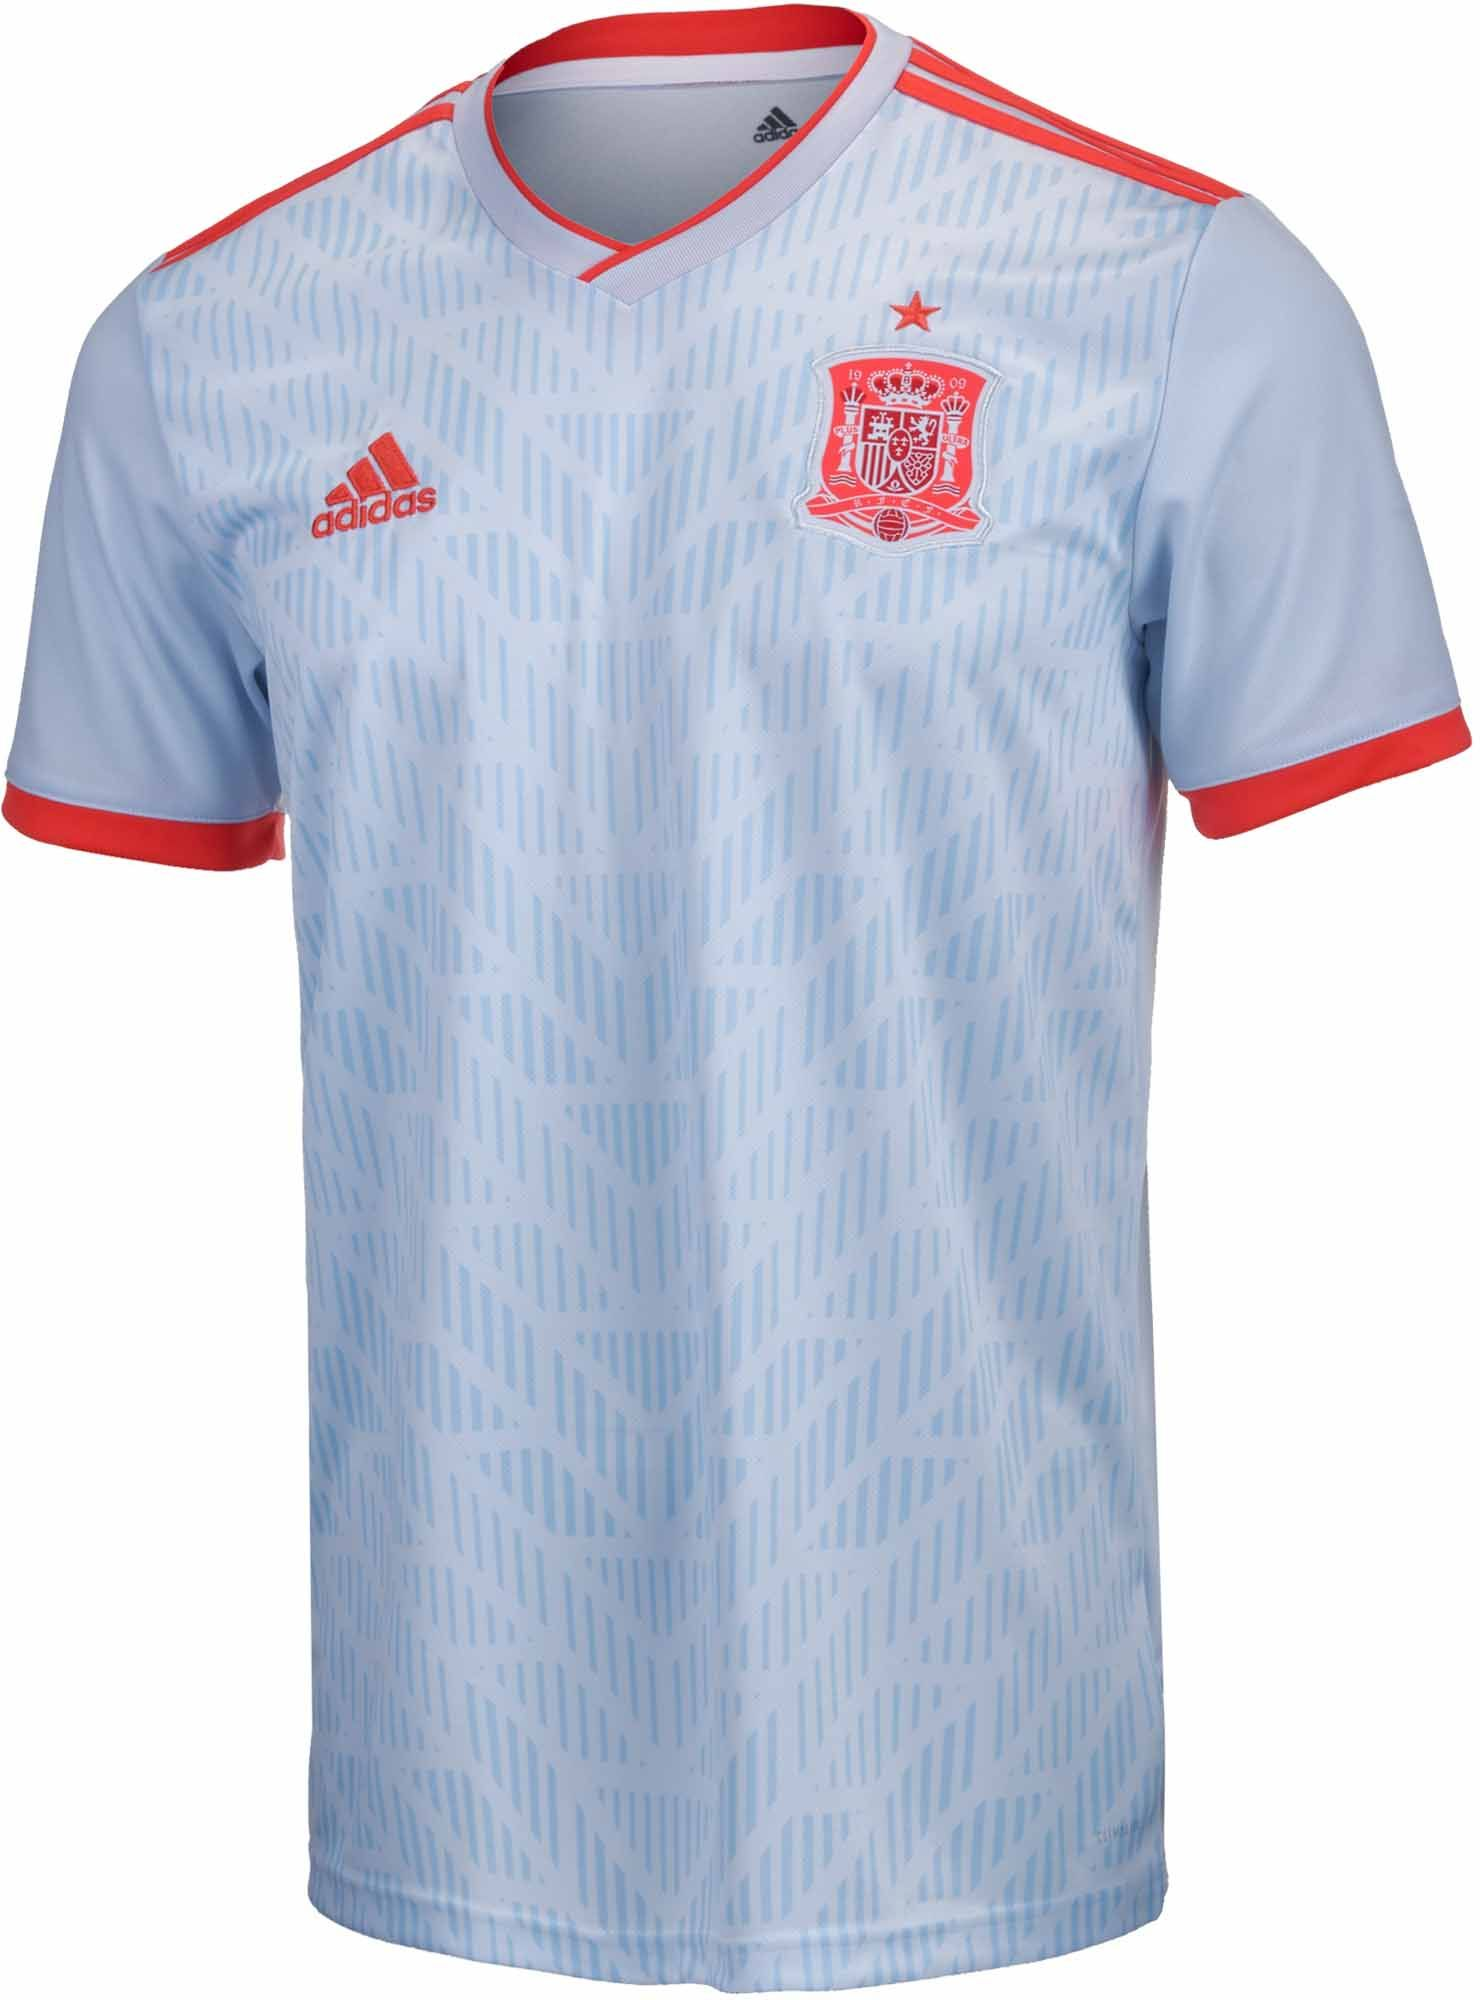 a7b9e7887a6 Kids 2018 adidas Spain Away Jersey. Hot right now at SoccerPro.